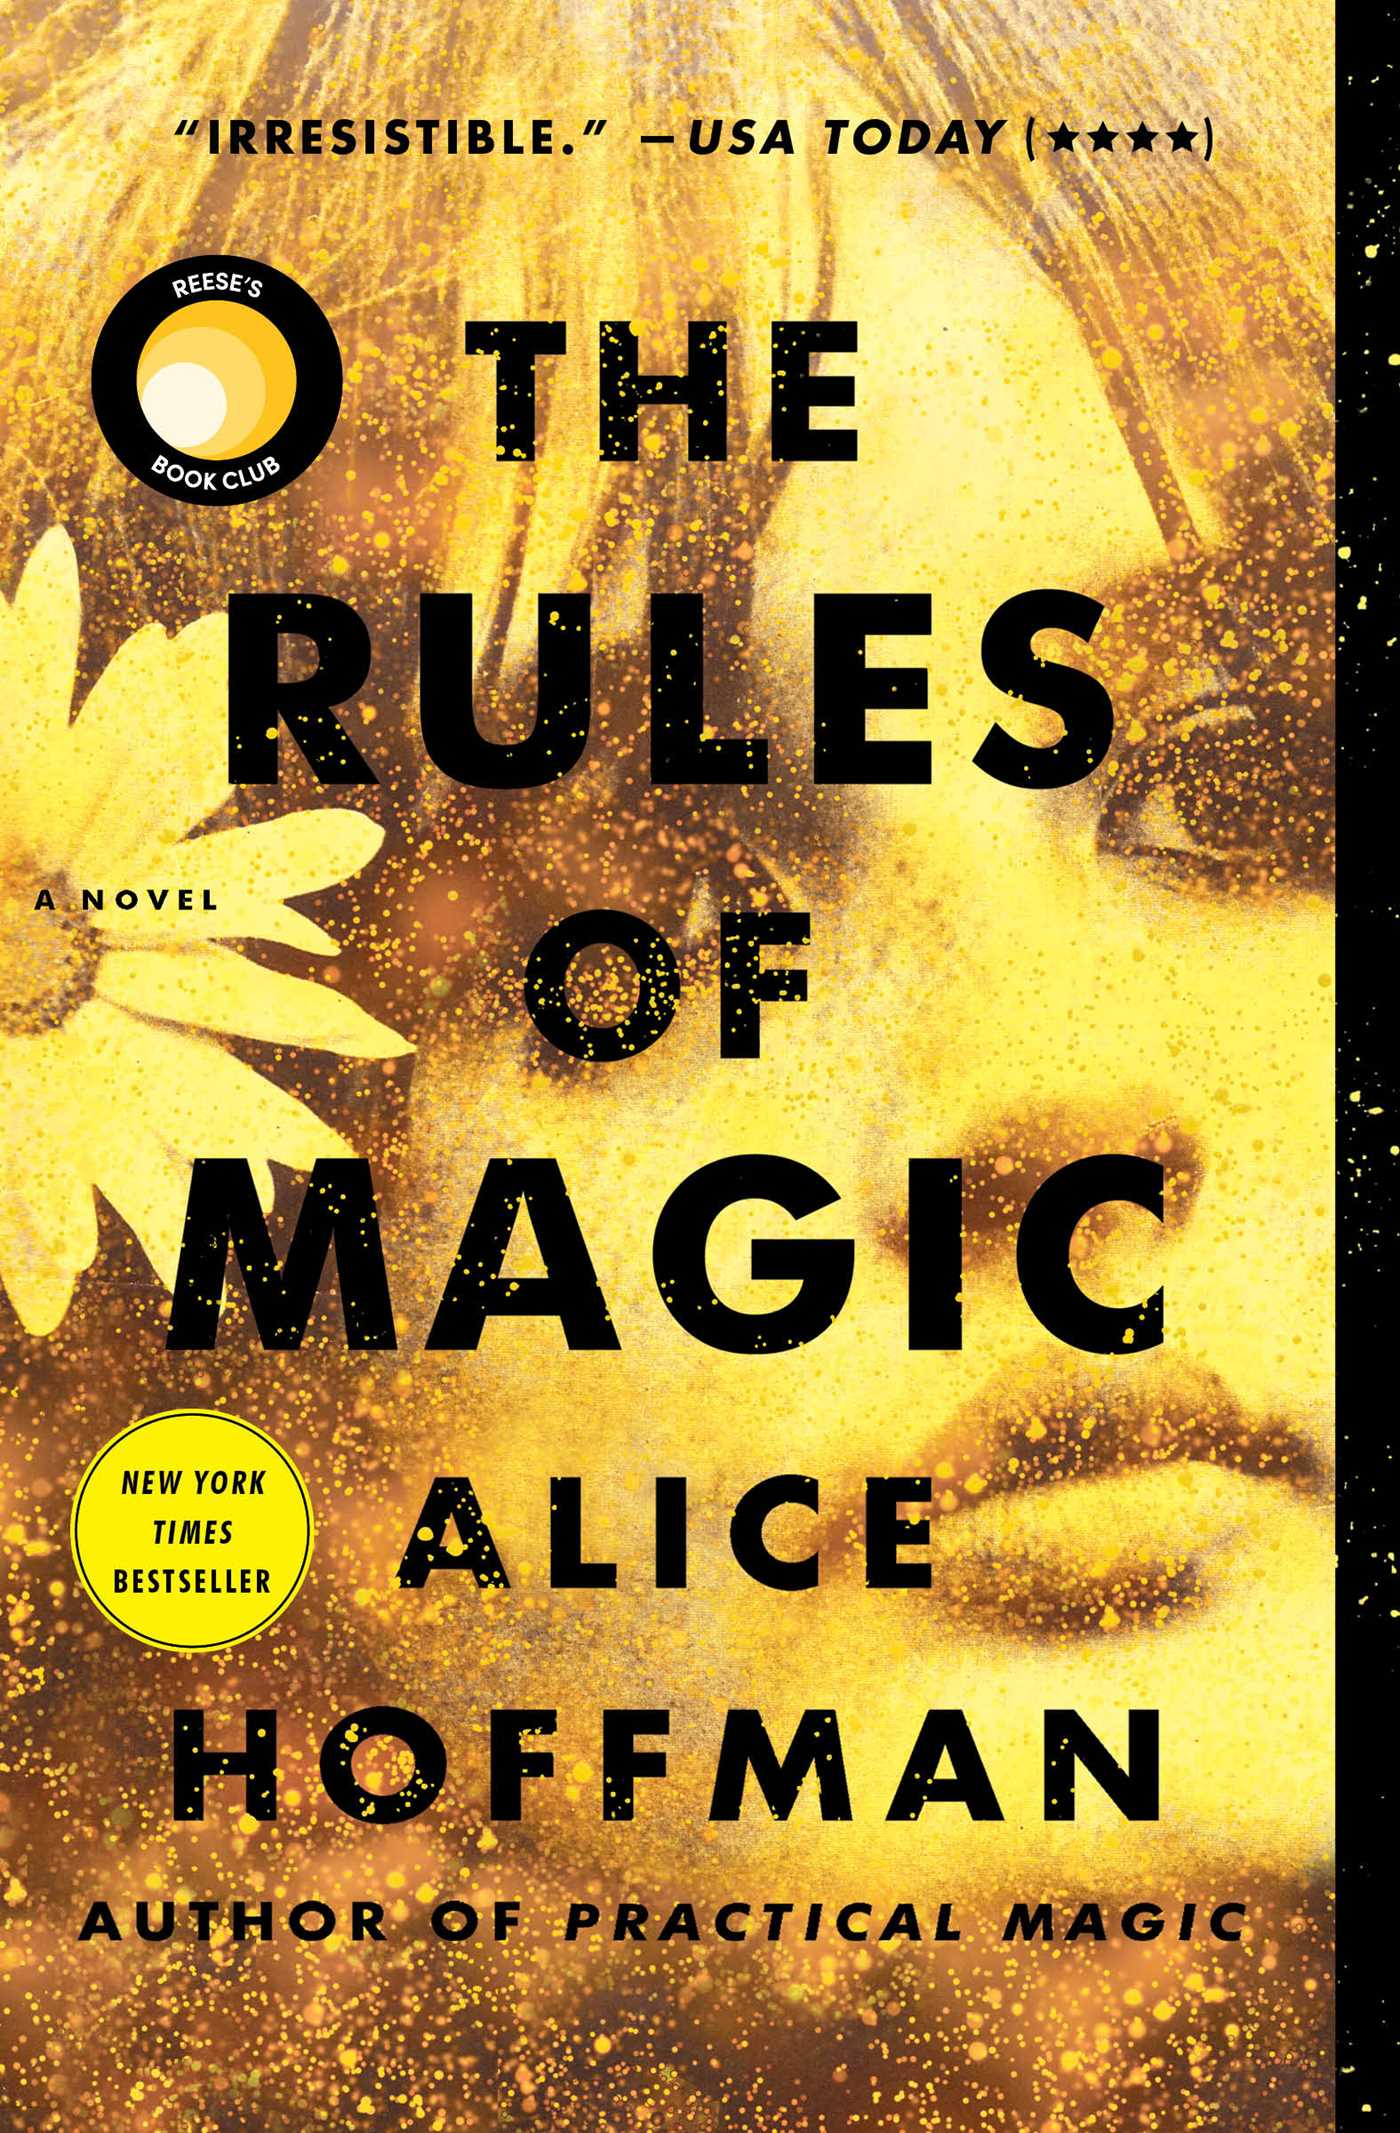 The cover of the book The Rules of Magic